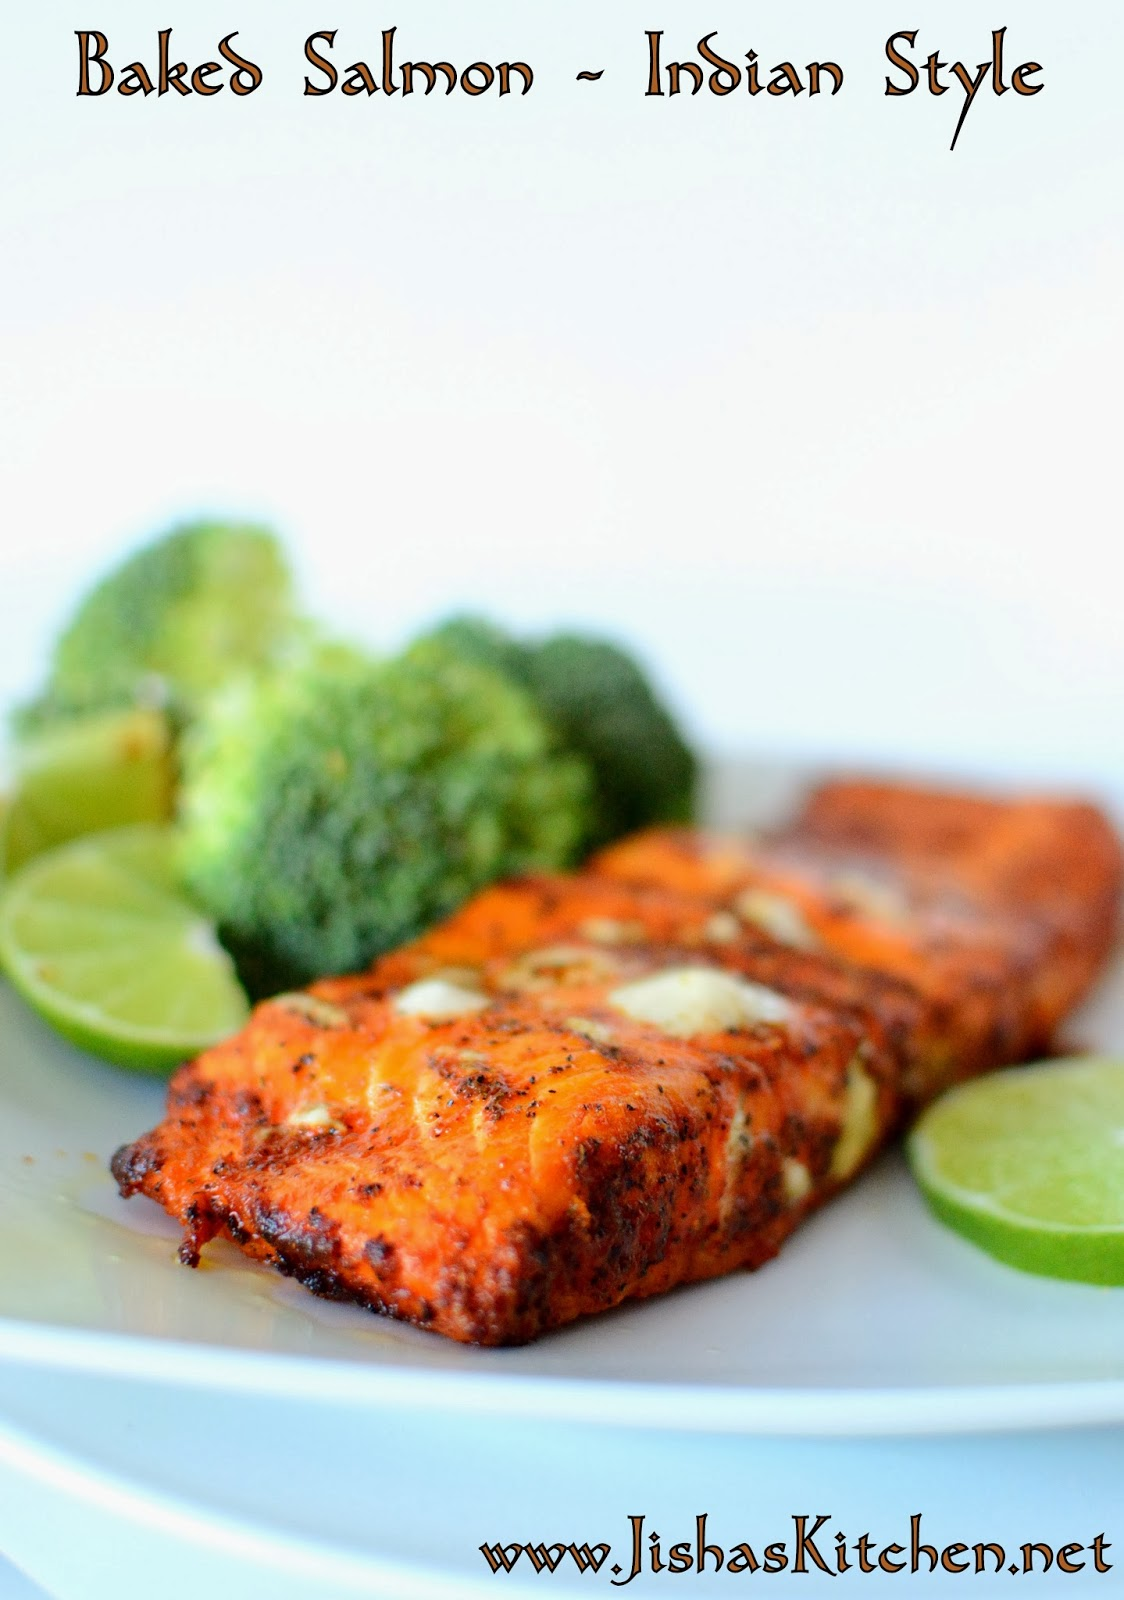 http://www.jishaskitchen.net/2013/12/indian-style-baked-salmon.html#more